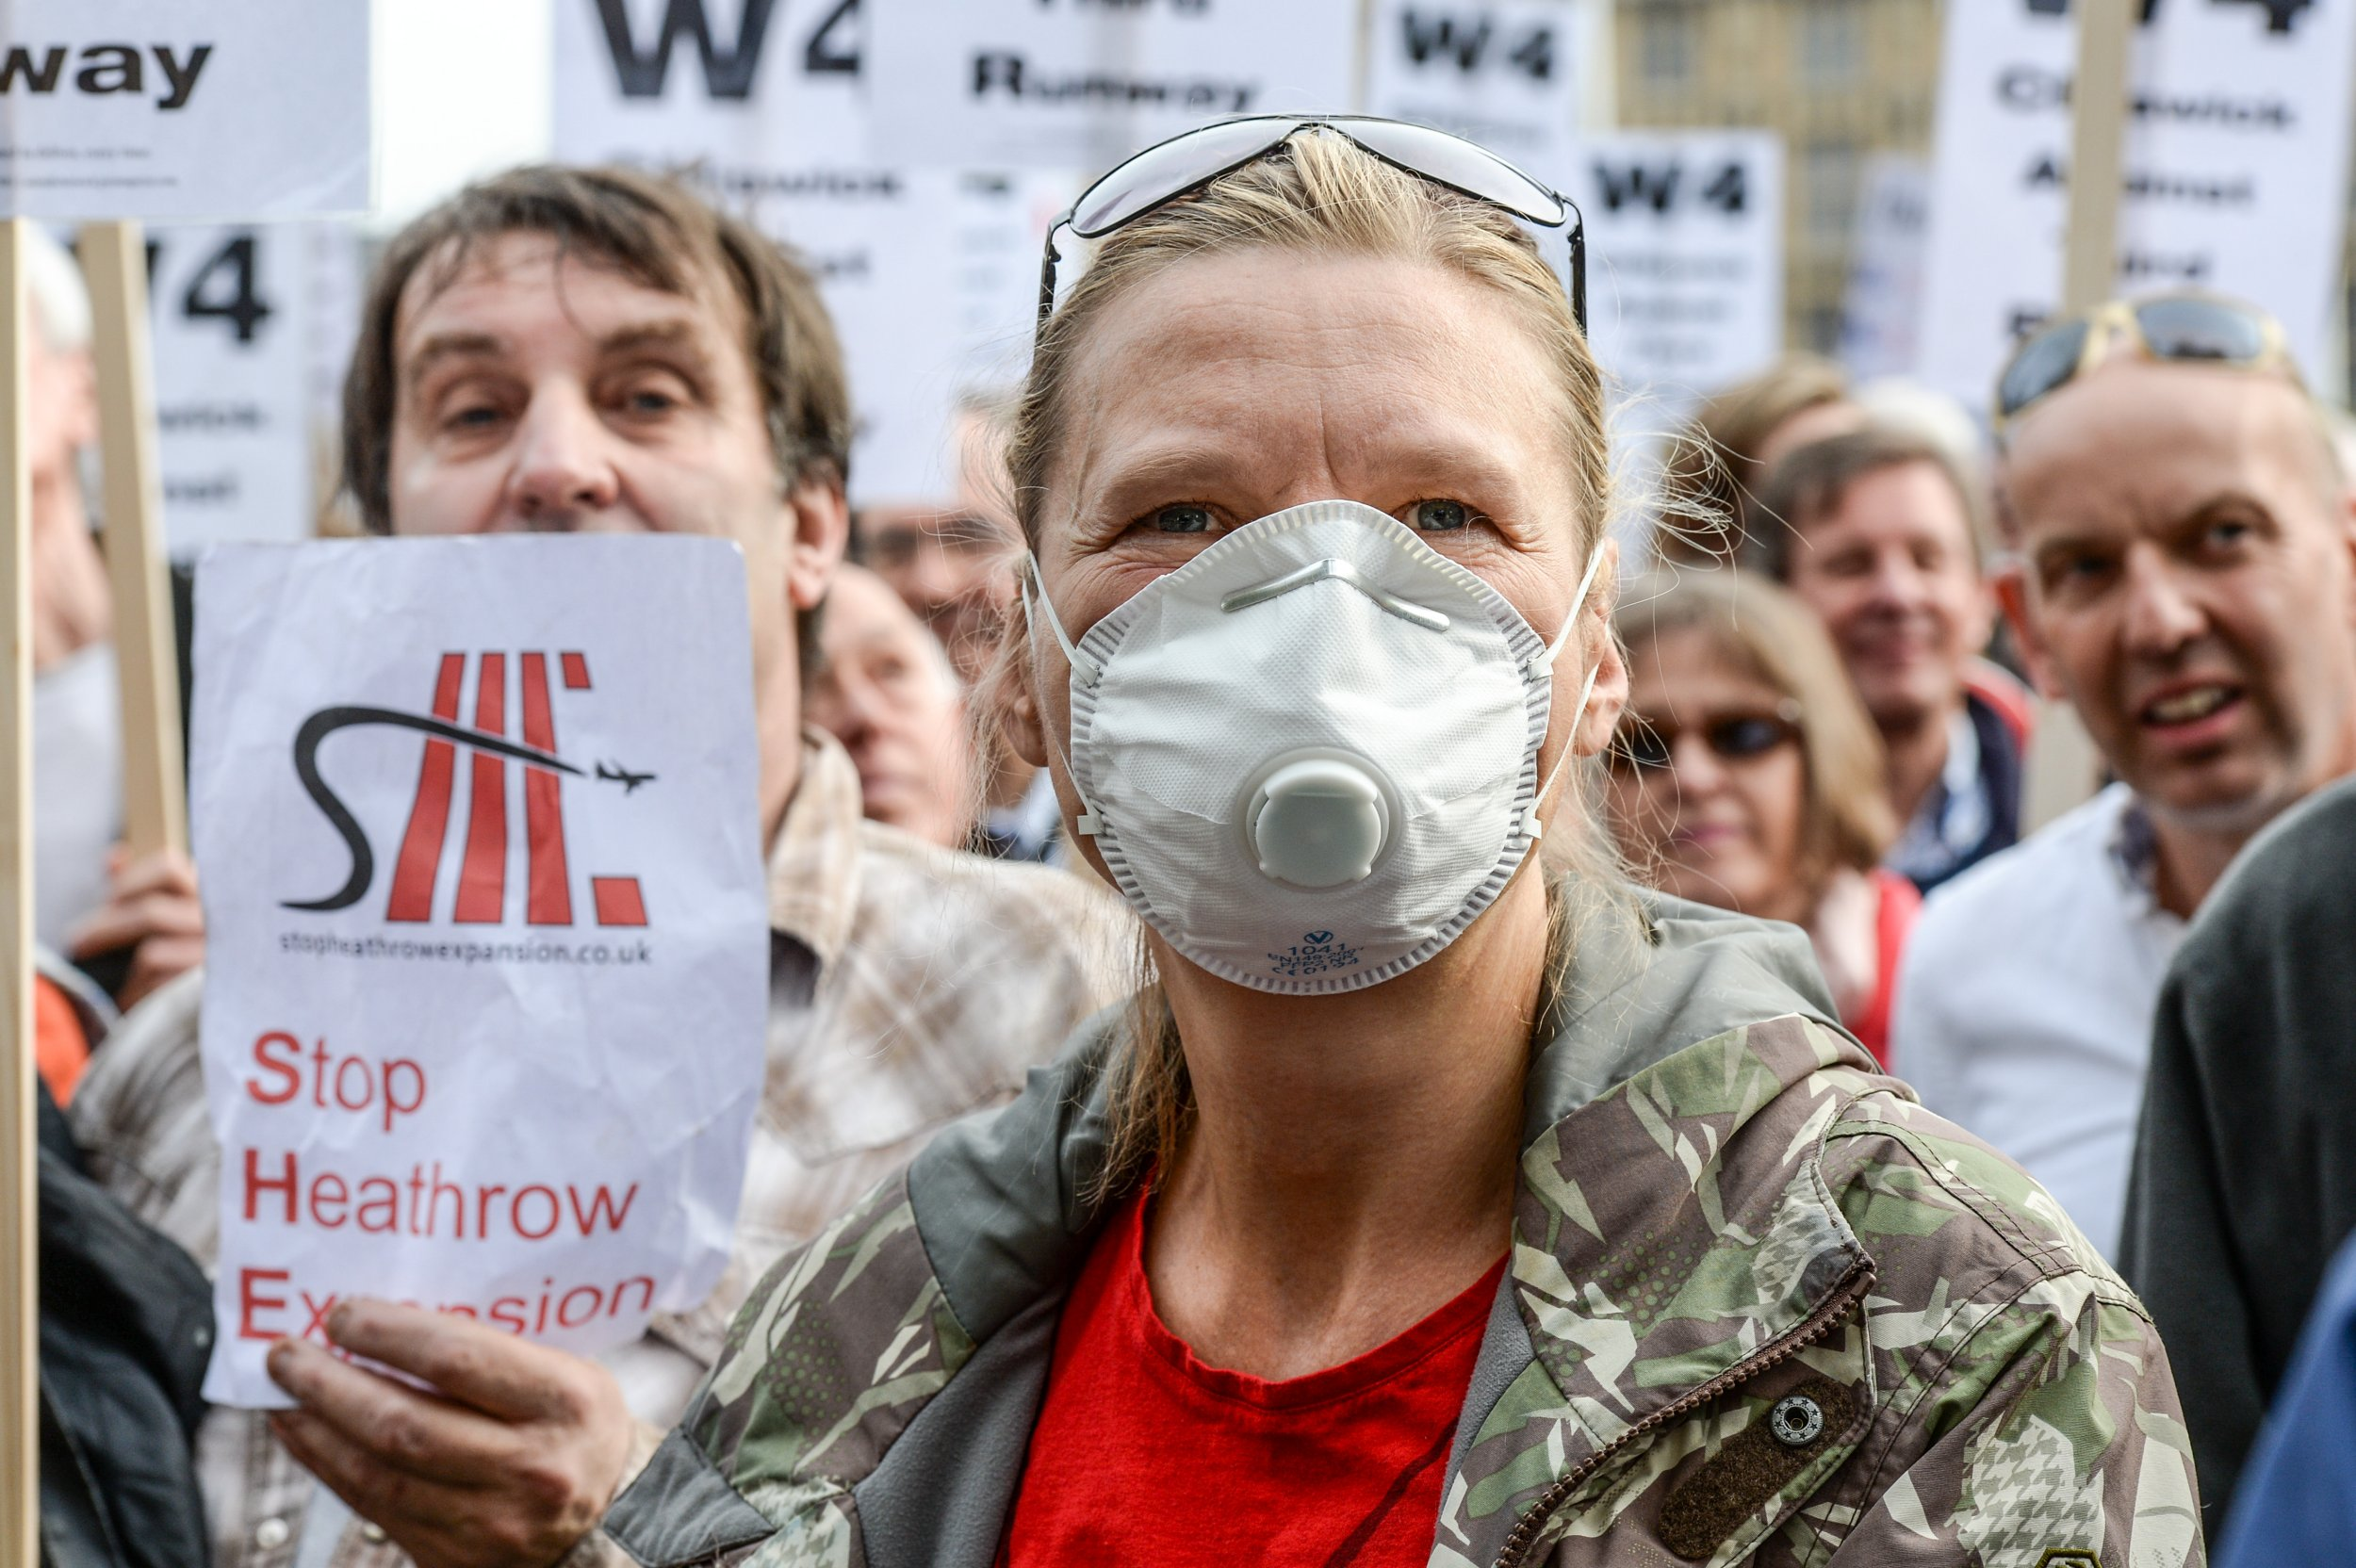 LONDON, ENGLAND - OCTOBER 10: Protesters hold signs during a rally against a third runway at Heathrow airport, in Parliament Square on October 10, 2015 in London, England. Before today's rally against a third runway at Heathrow, Parliamentary hearings were announced yesterday to investigate whether the increase in flight traffic will break toxic air limits. (Photo by Chris Ratcliffe/Getty Images)